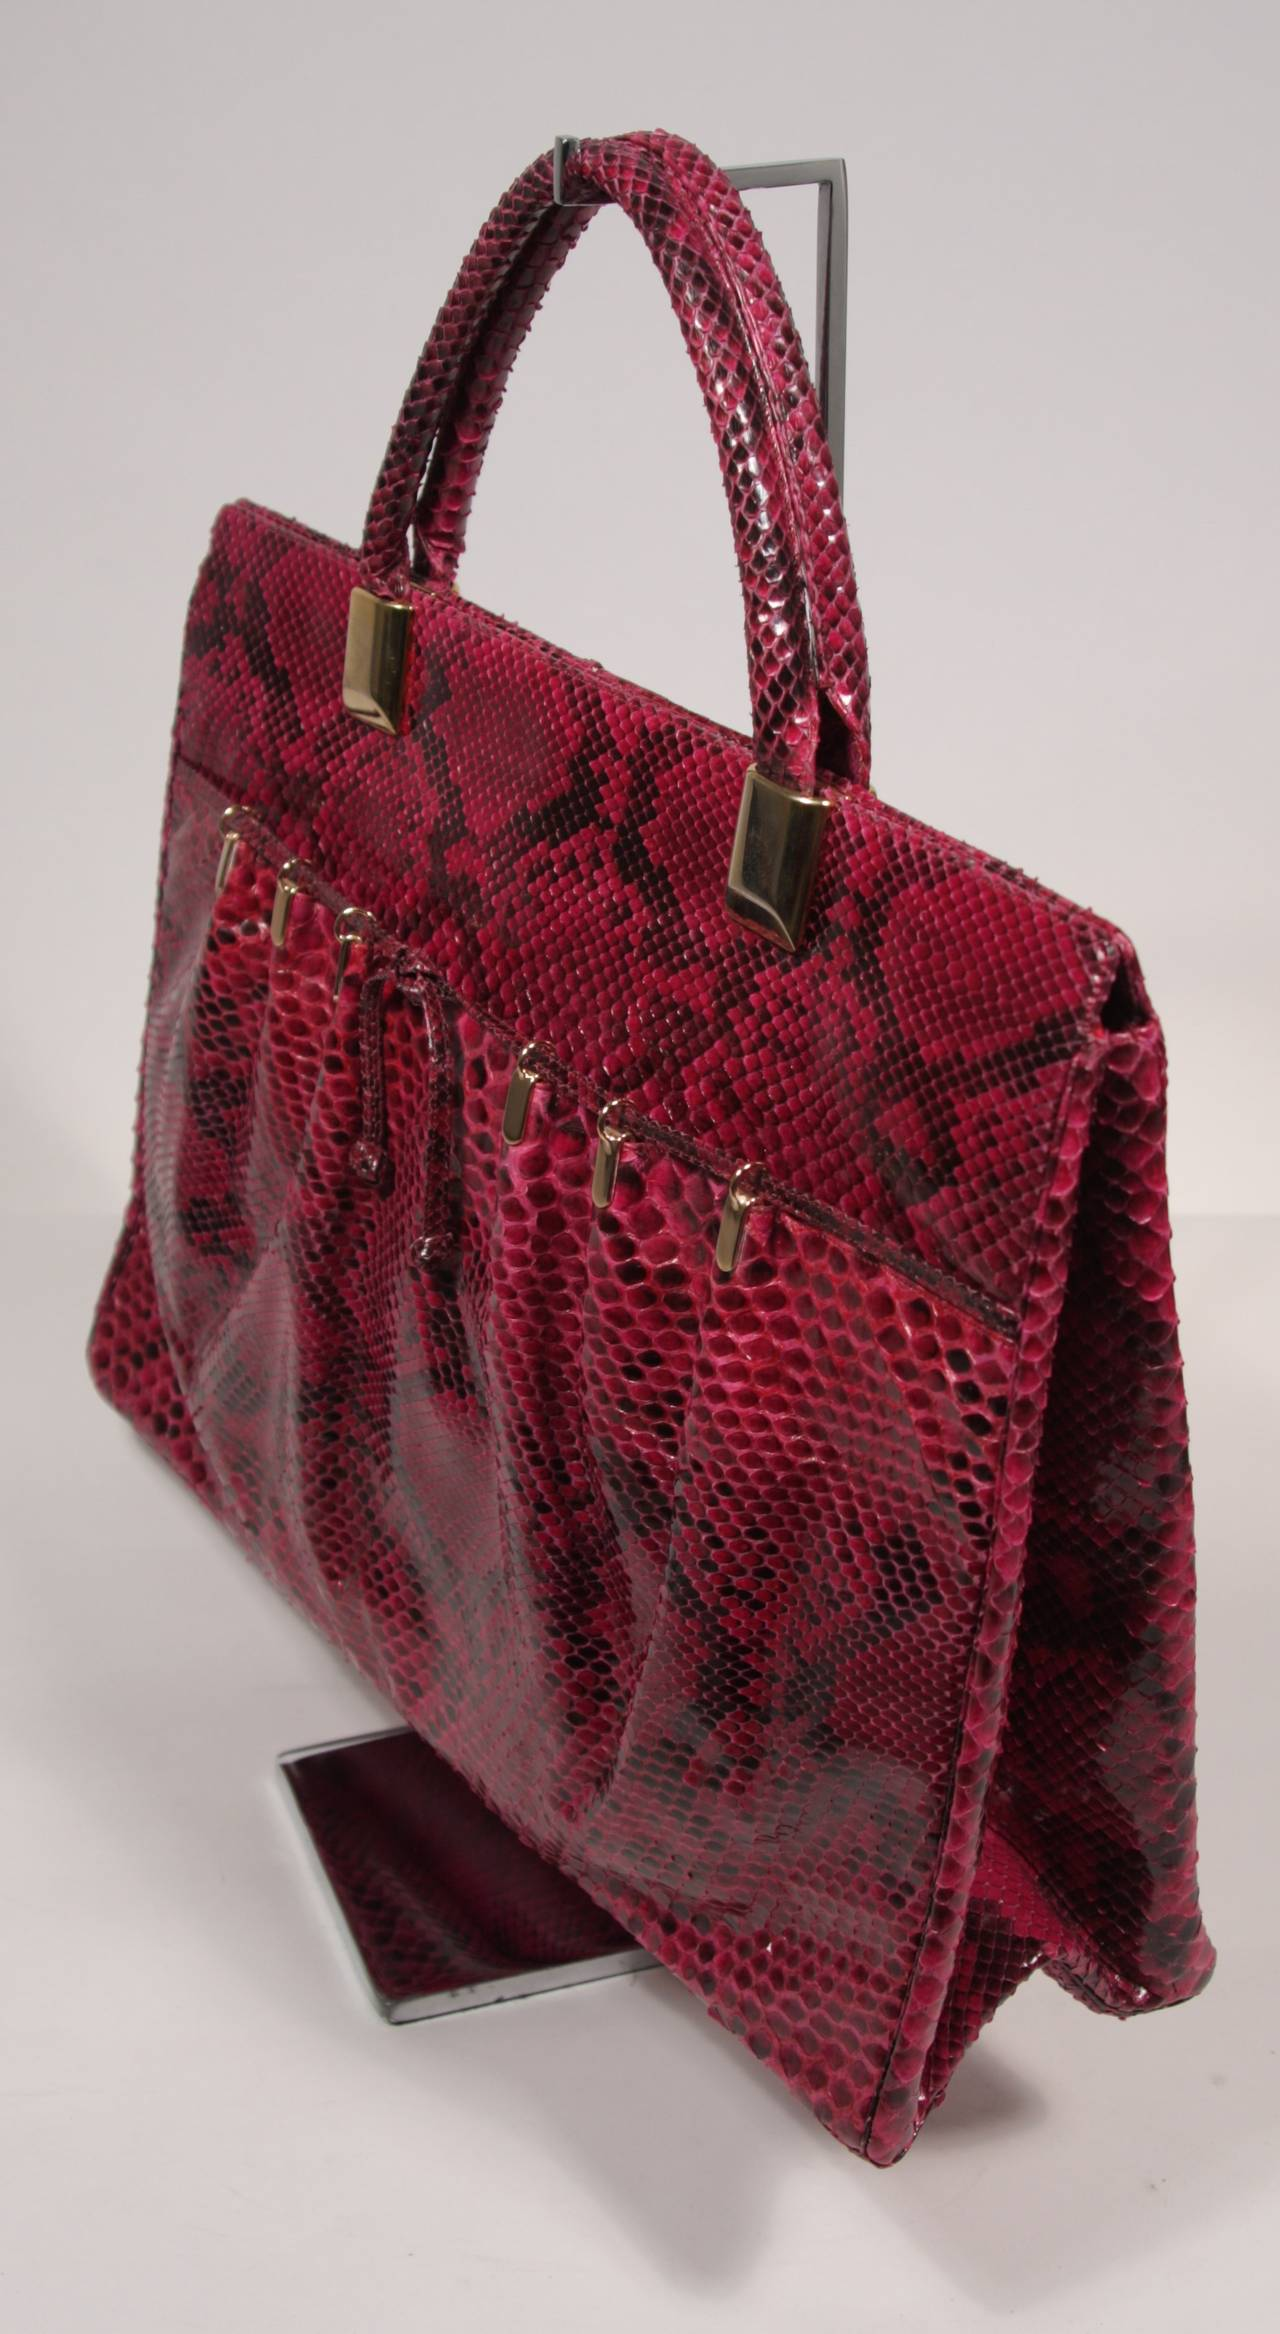 1980's Judith Leiber Extra Large Magenta Snakeskin Tote with Gold Hardware 5